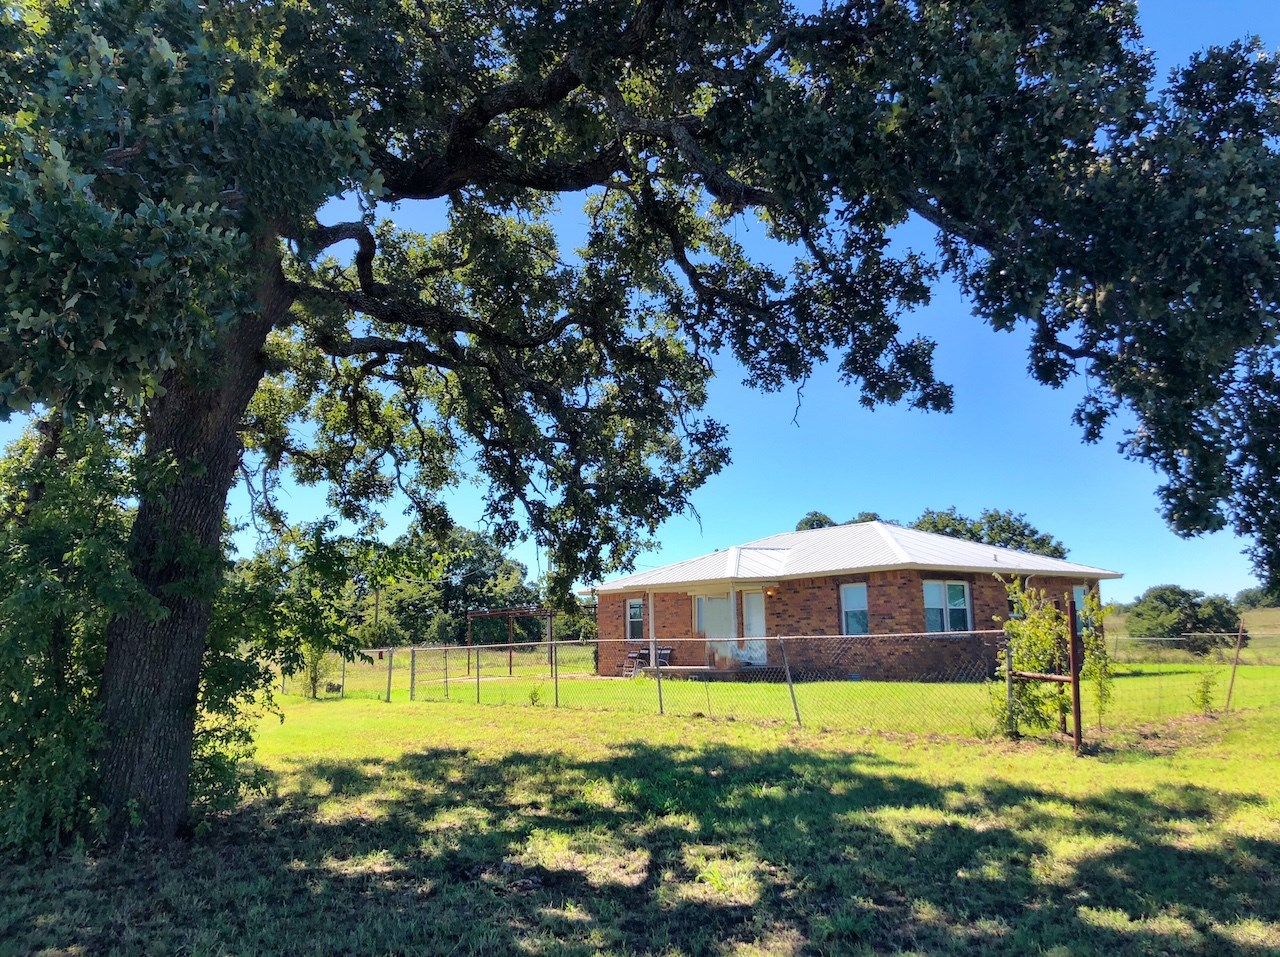 FARMHOUSE ON 101 ACRES/ 7 PONDS WITH PASTURE AND WOODS